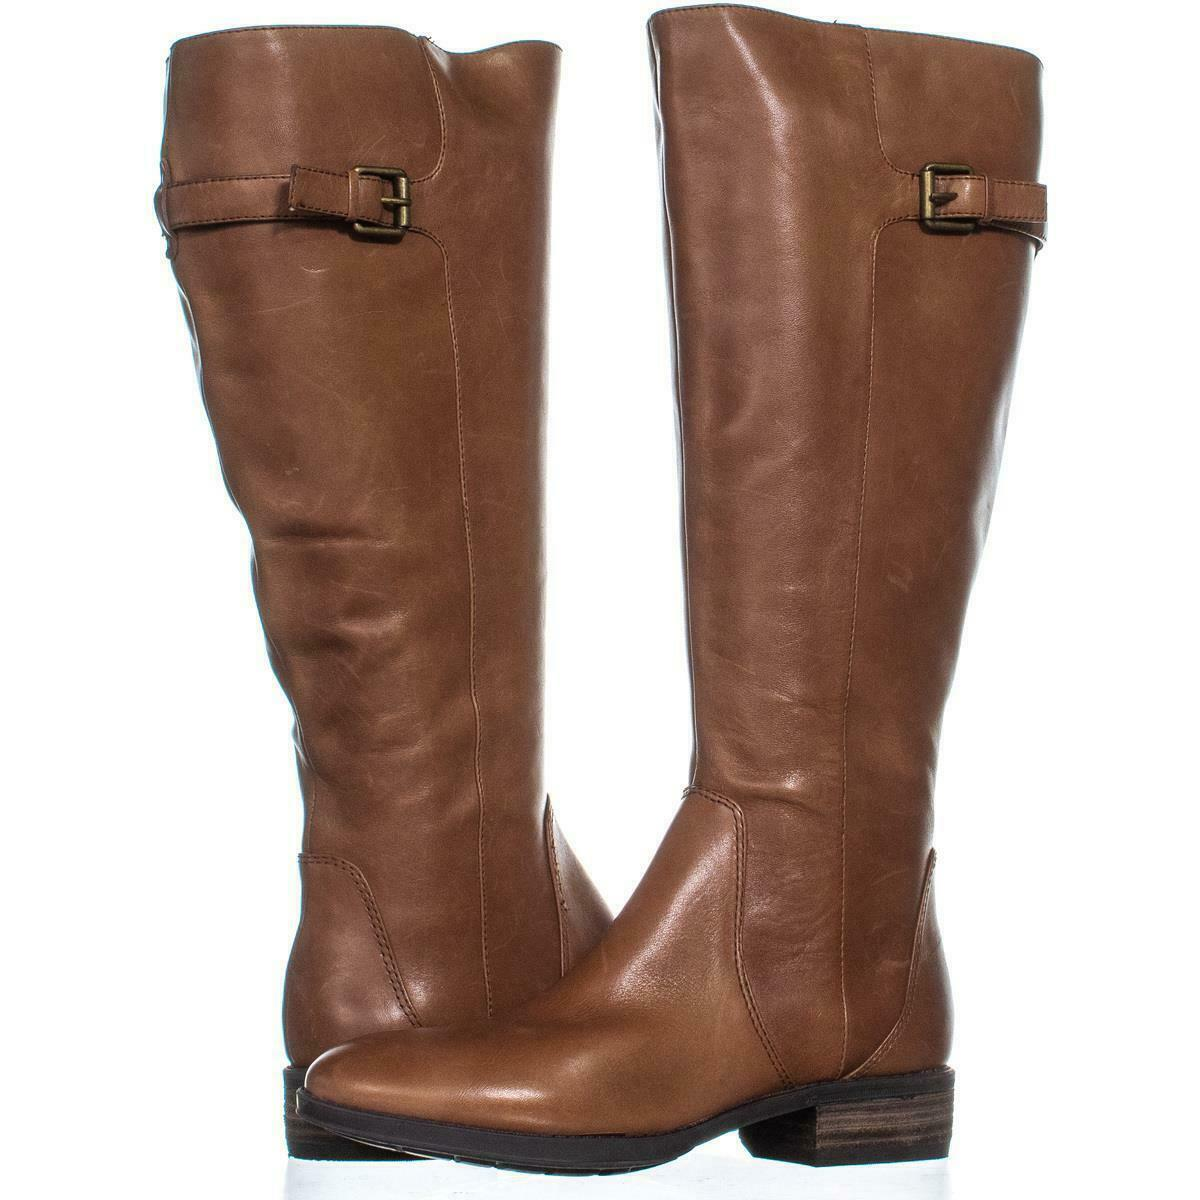 37bf1d4886d Sam Edelman Boot: 1 customer review and 286 listings